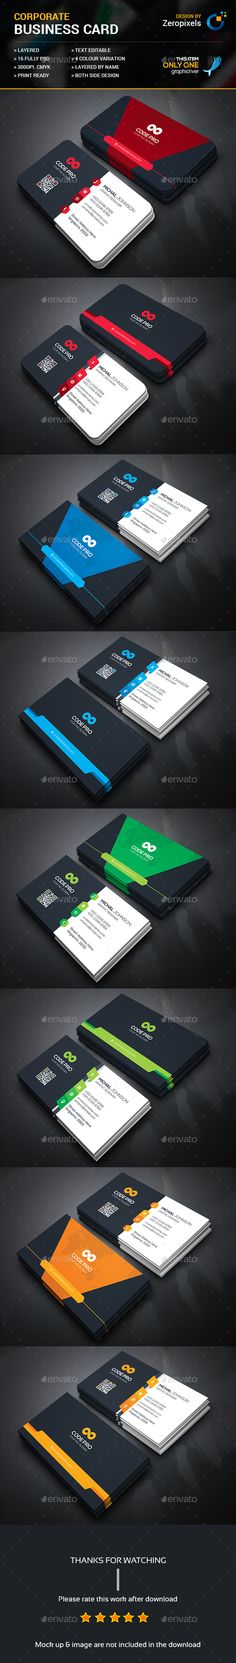 Rent a car business card psd template download business corporate business card templates psd bundle wajeb Images